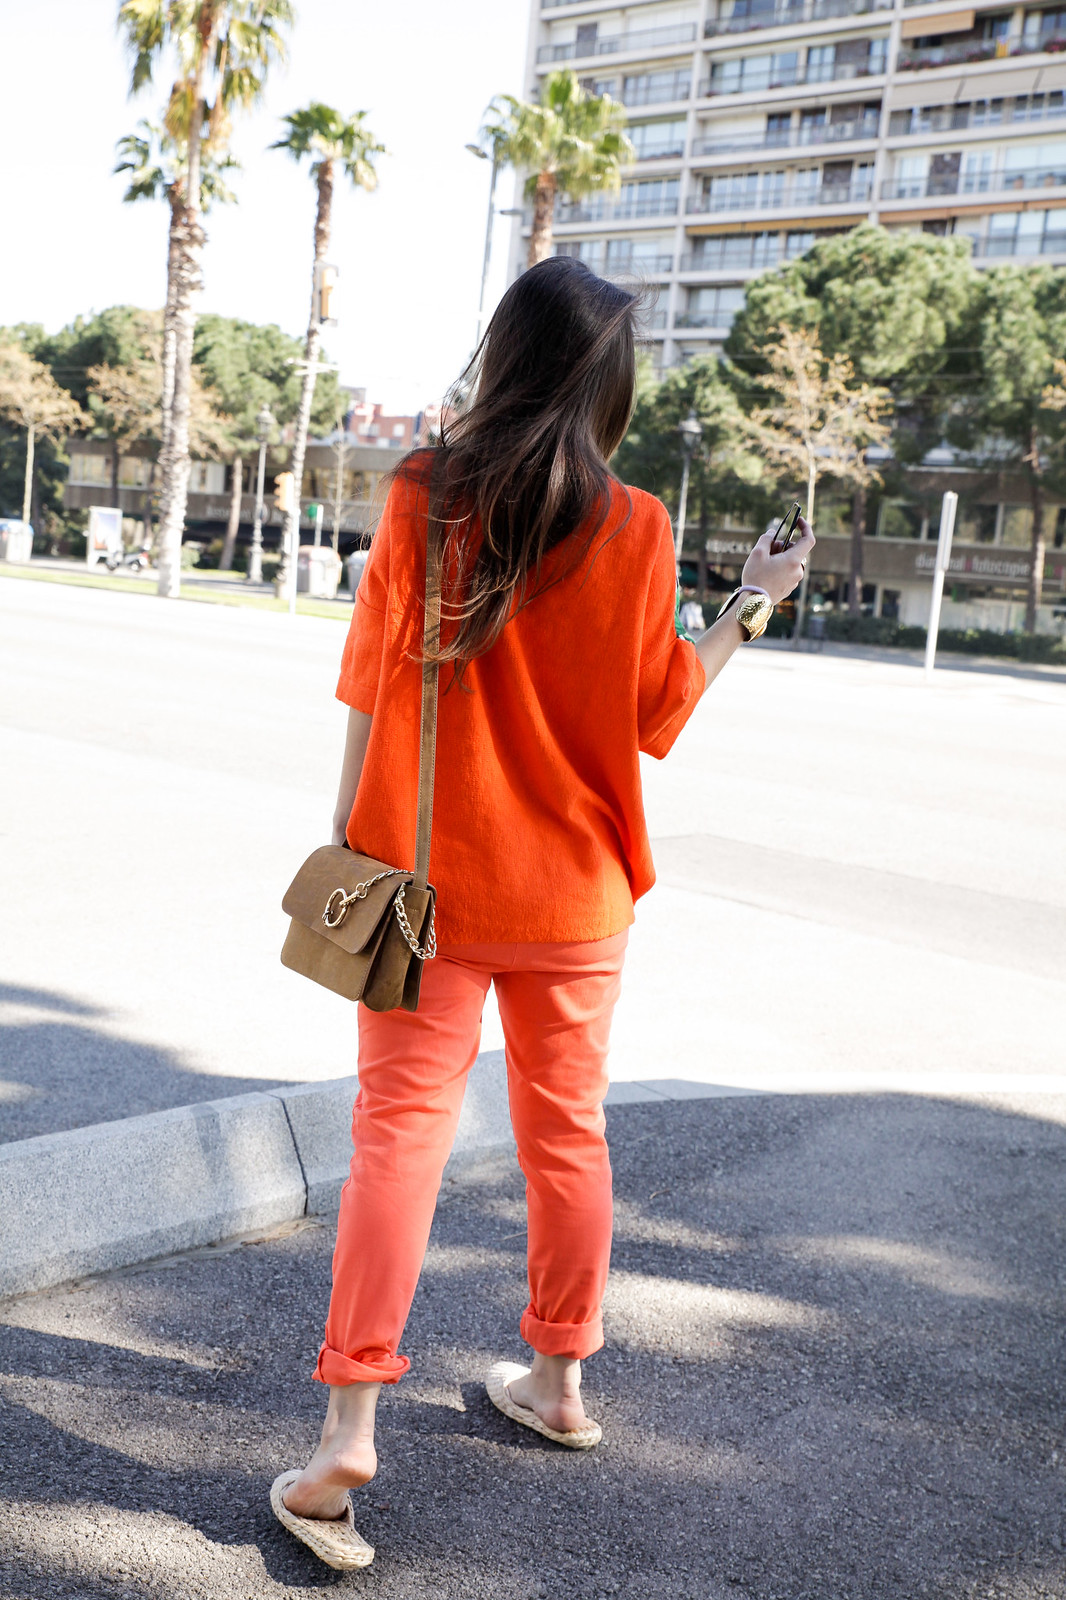 014_tropical_outfit_must_have_orange_skinny_inspo_look_theguestgirl_barcelona